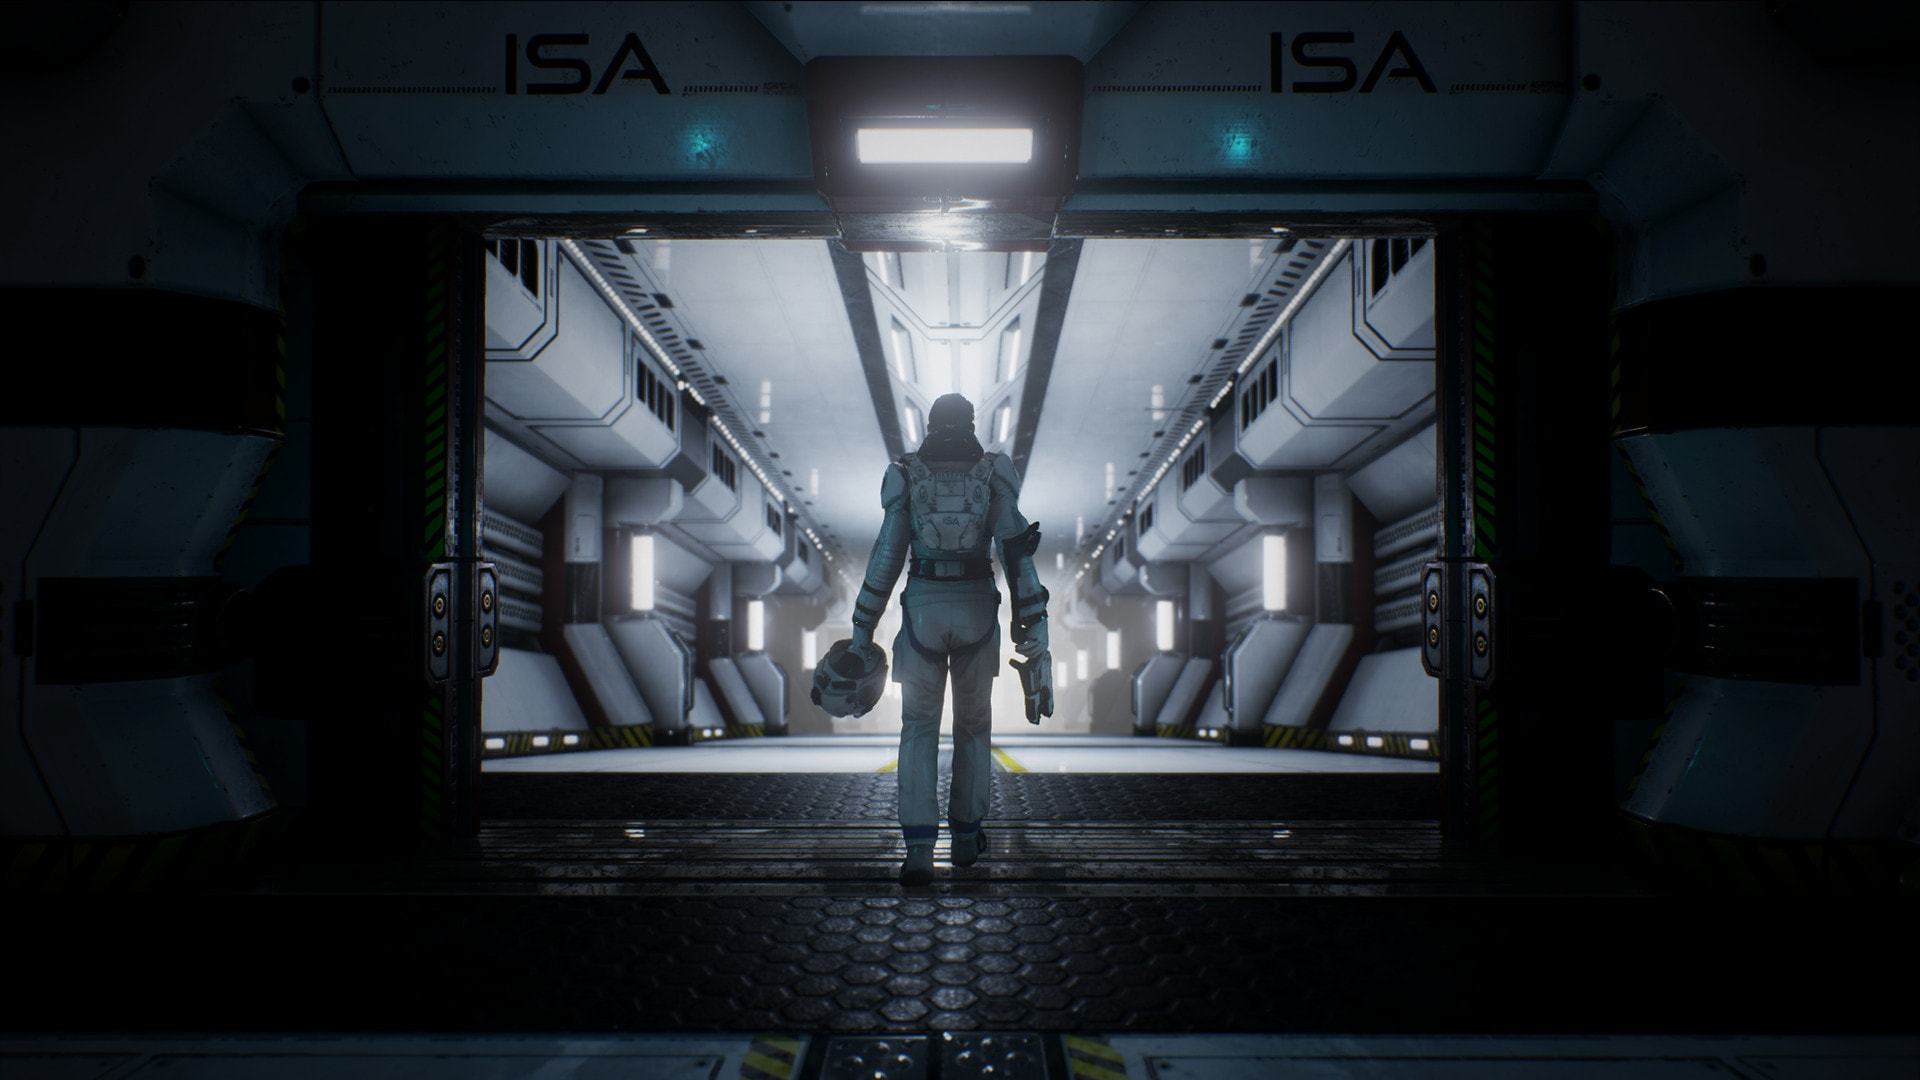 The Turing Test widescreen wallpapers